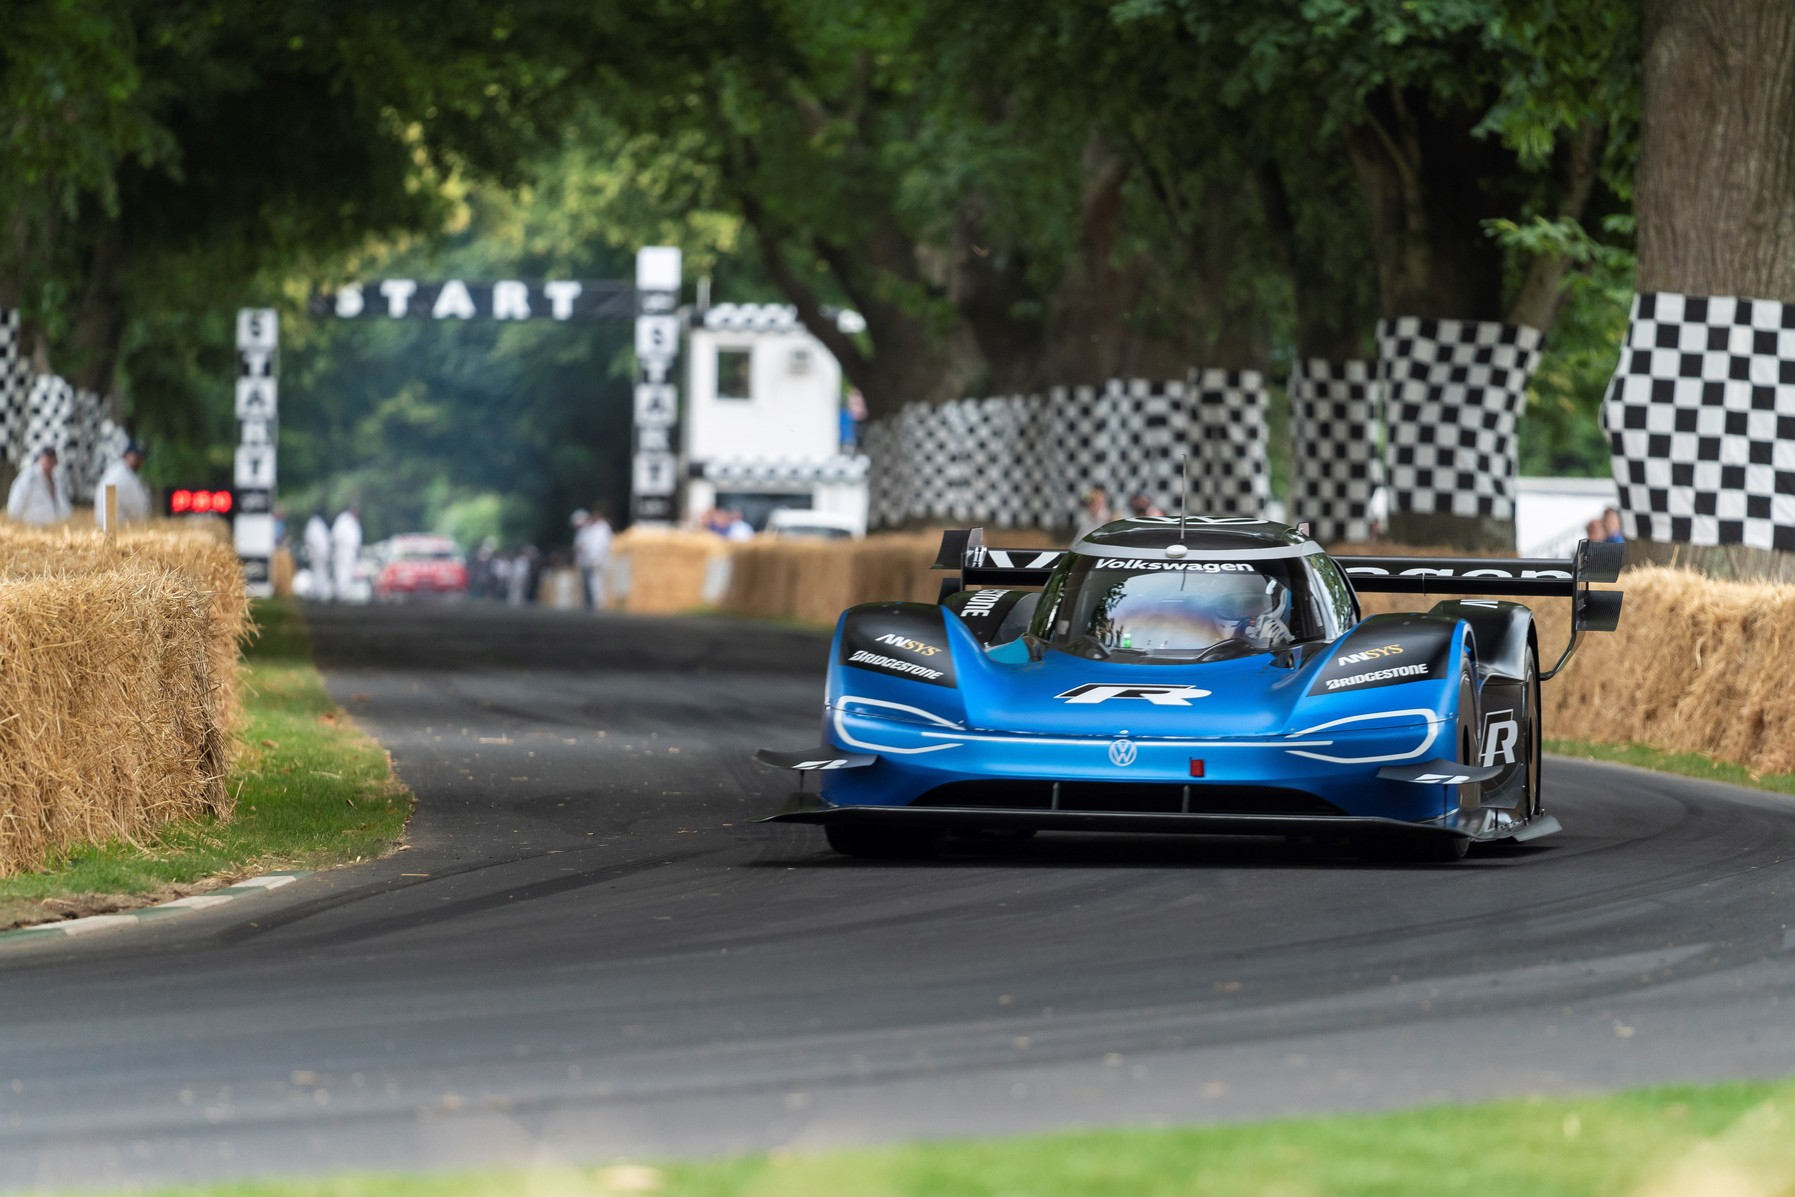 volkswagen id r whoops a formula one car to take the goodwood hill climb record